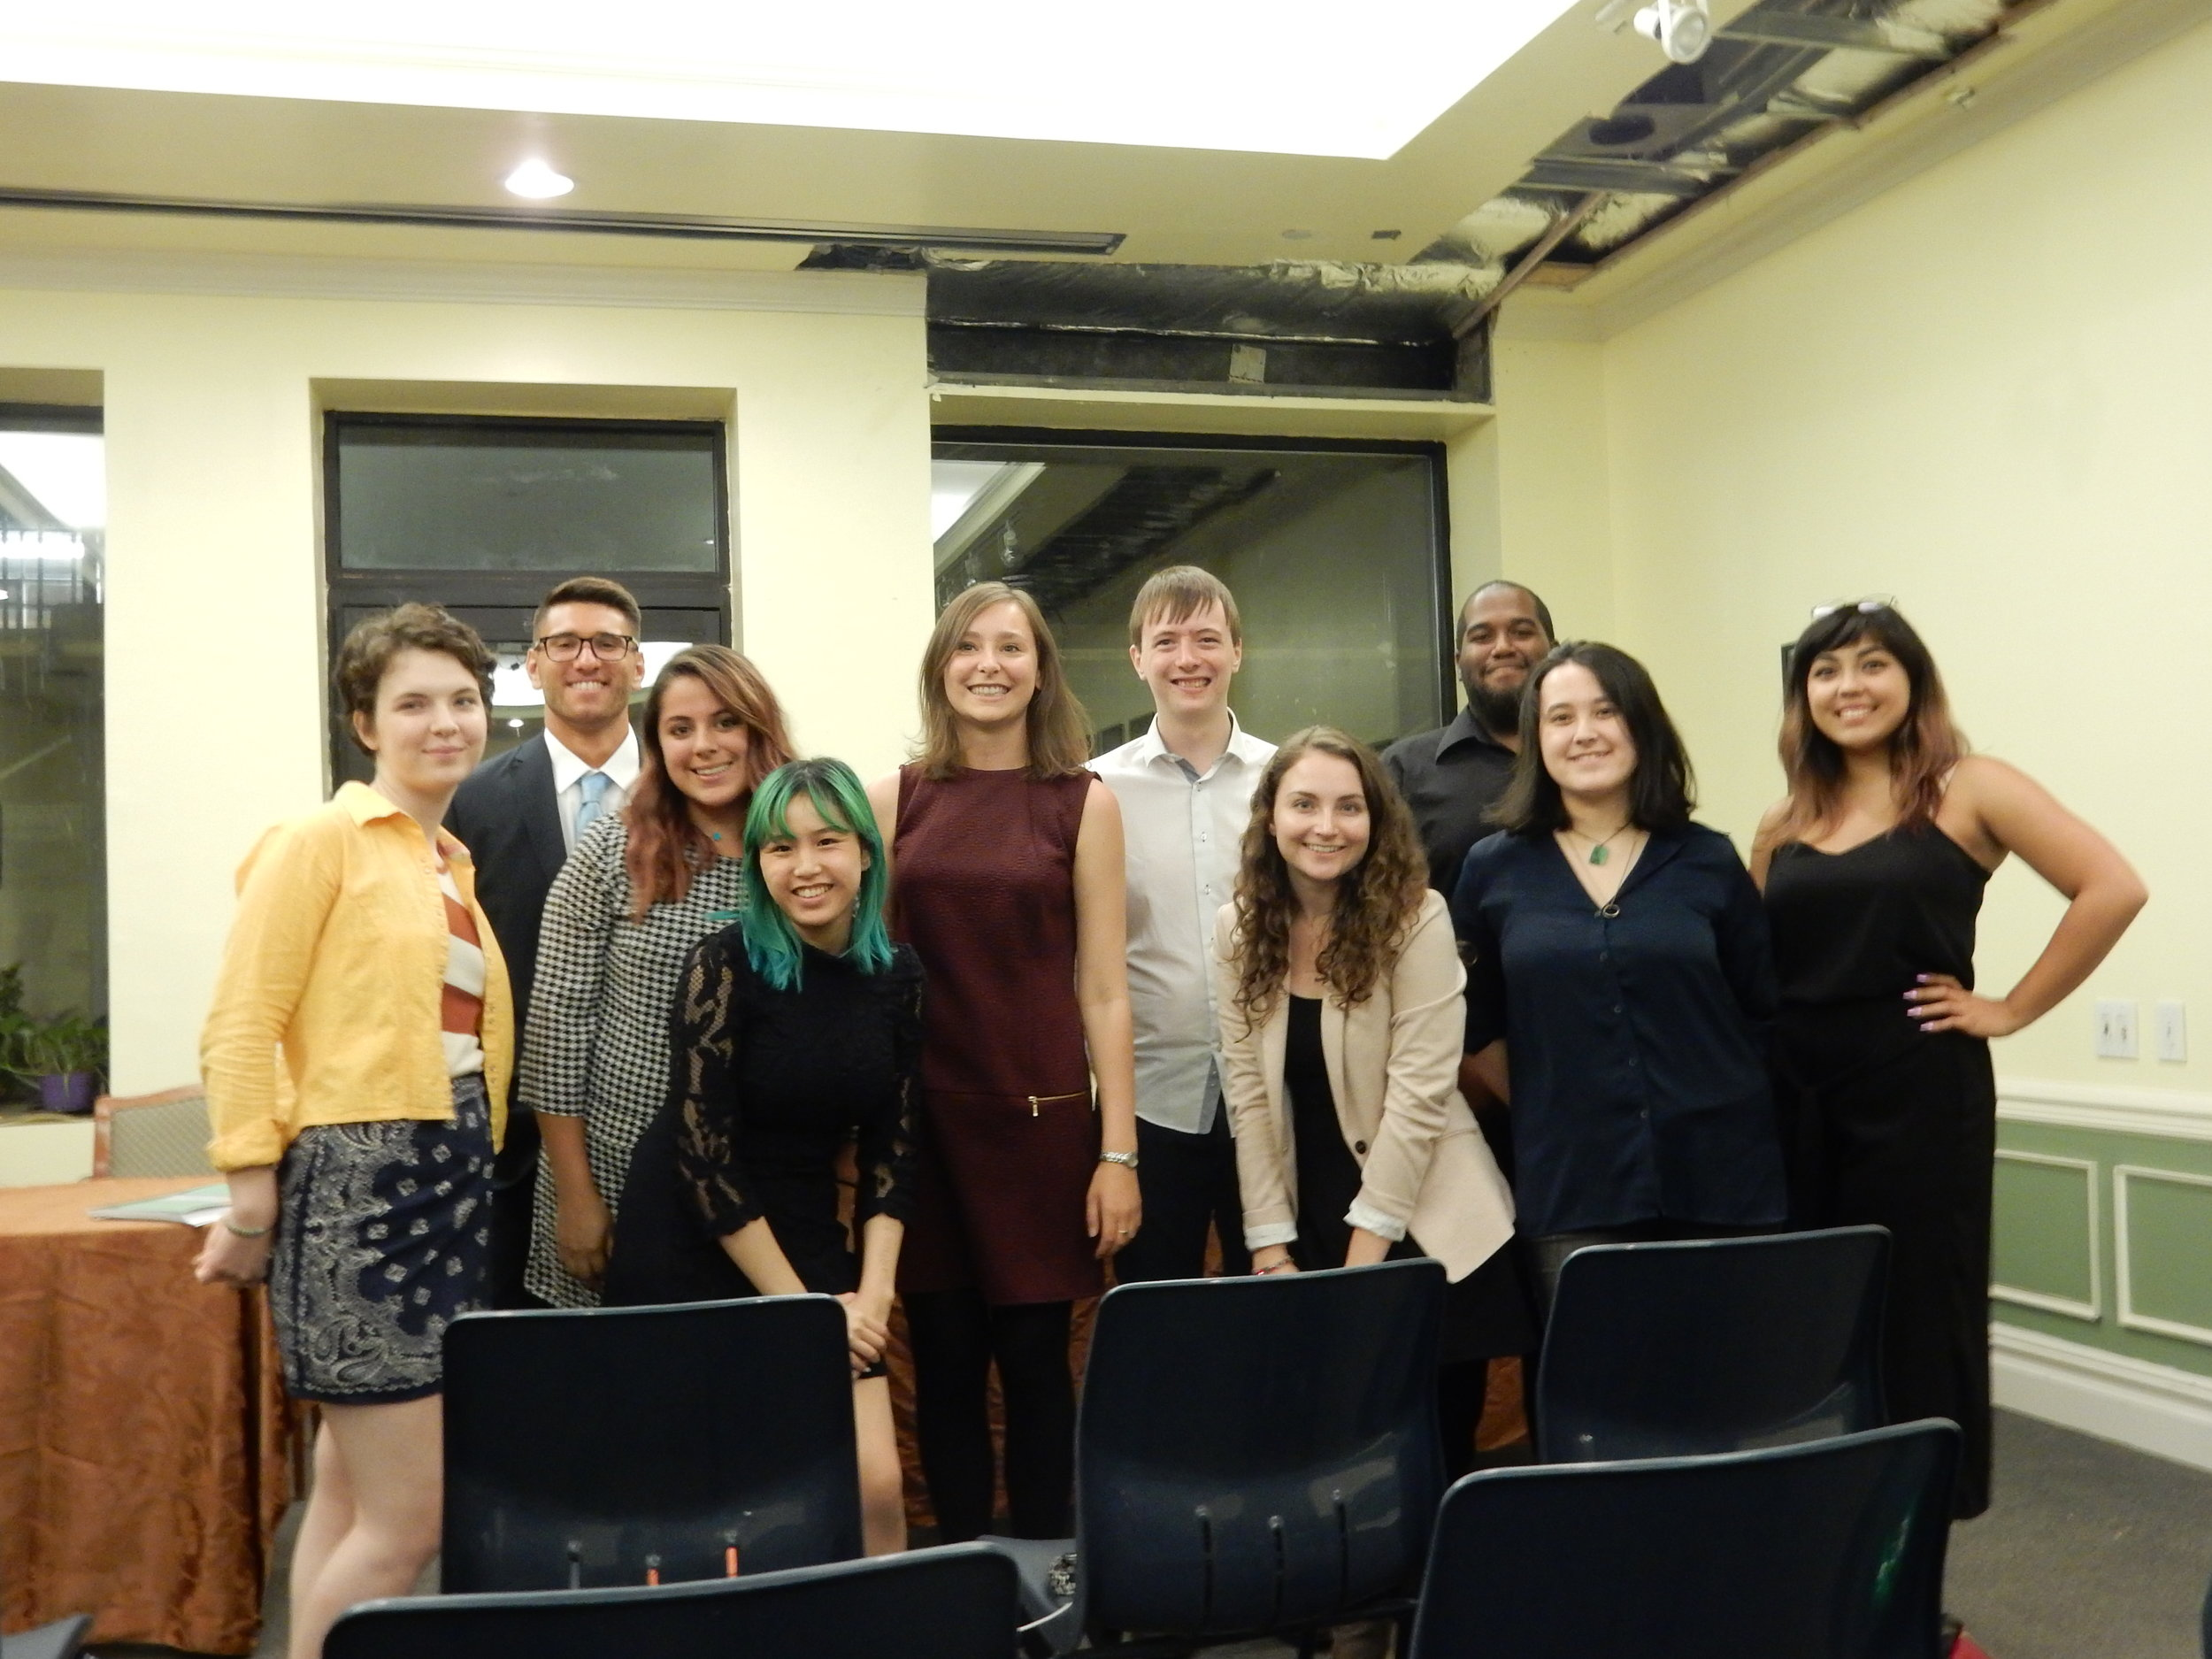 St. John's University Debaters and the 2017 British Tour Debaters pose after the first debate of the 2017 tour.